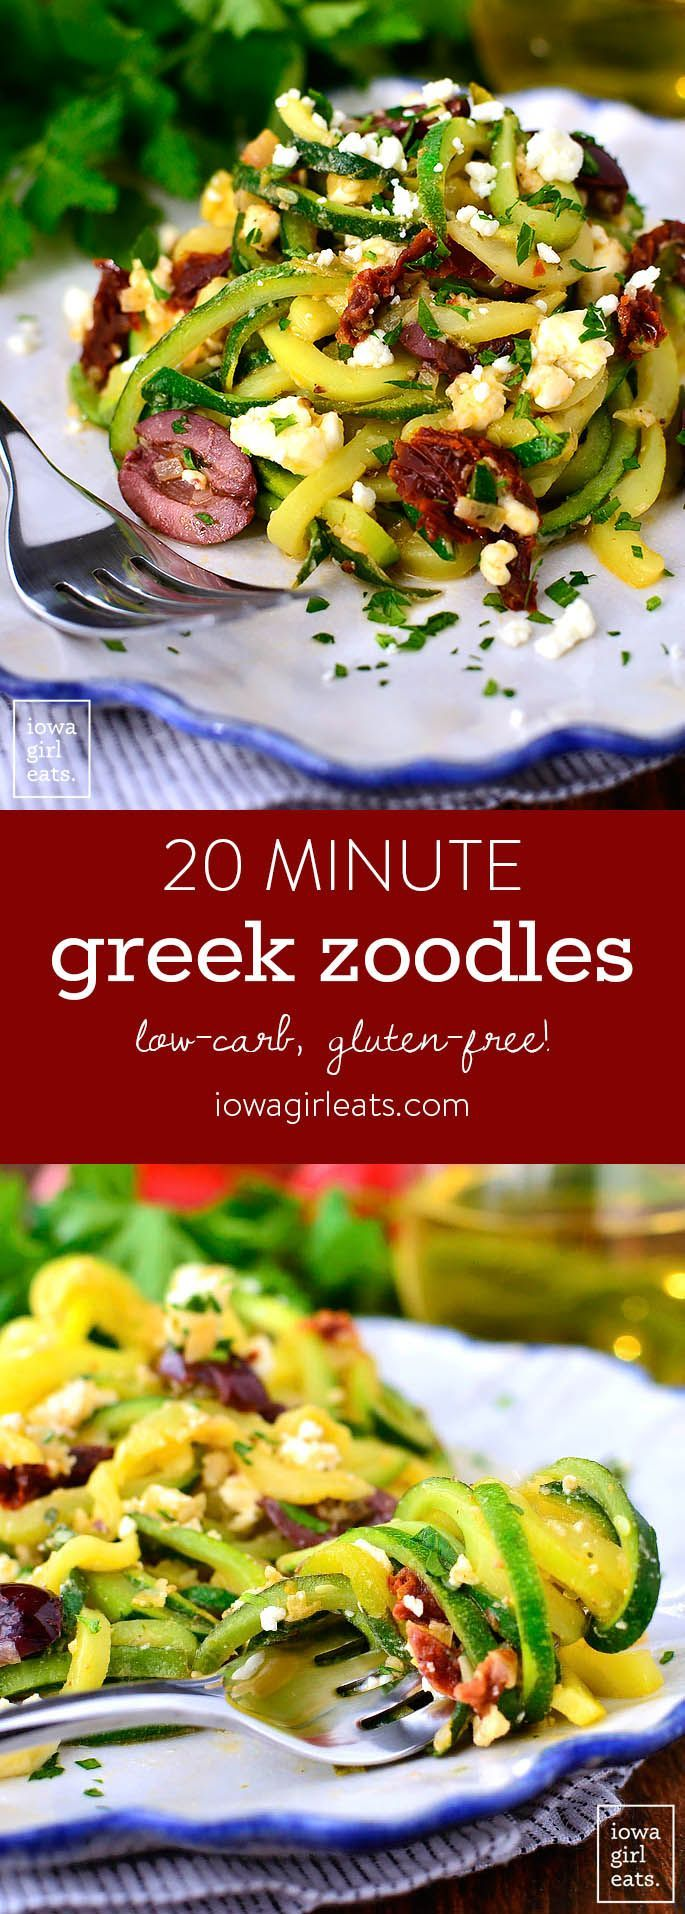 Greek Zoodles cook in just 10 minutes and are full of fresh, clean flavors. Pair with chicken or shrimp, or serve as a gluten-free light main meal for two! | iowagirleats.com